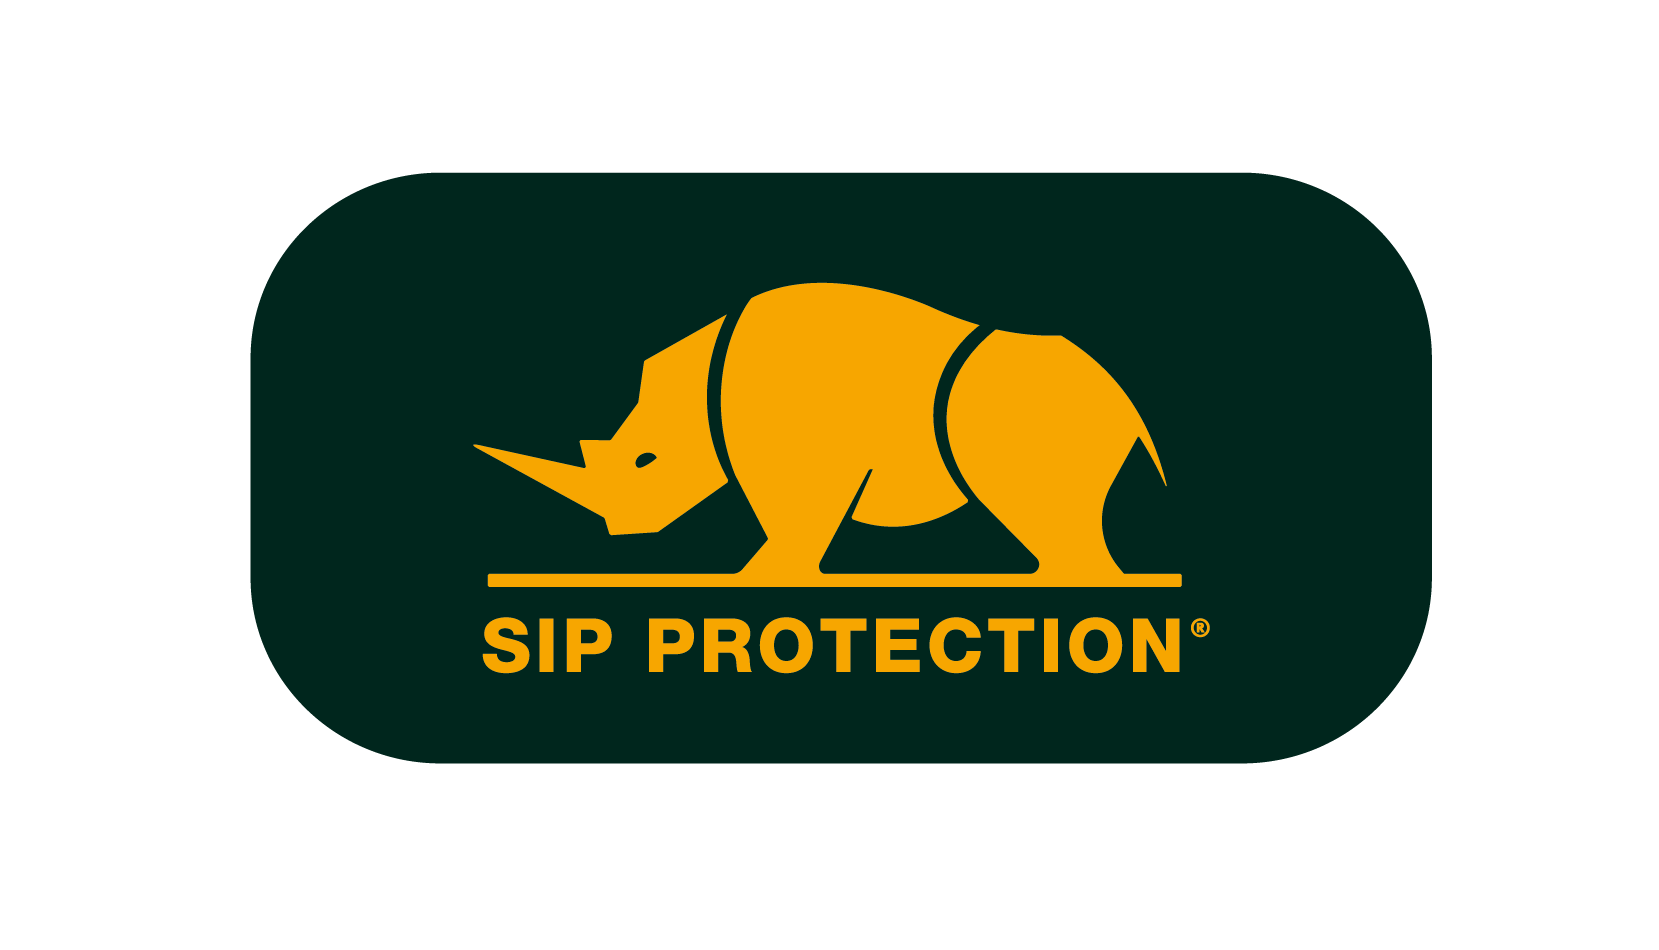 Sip Protection logo